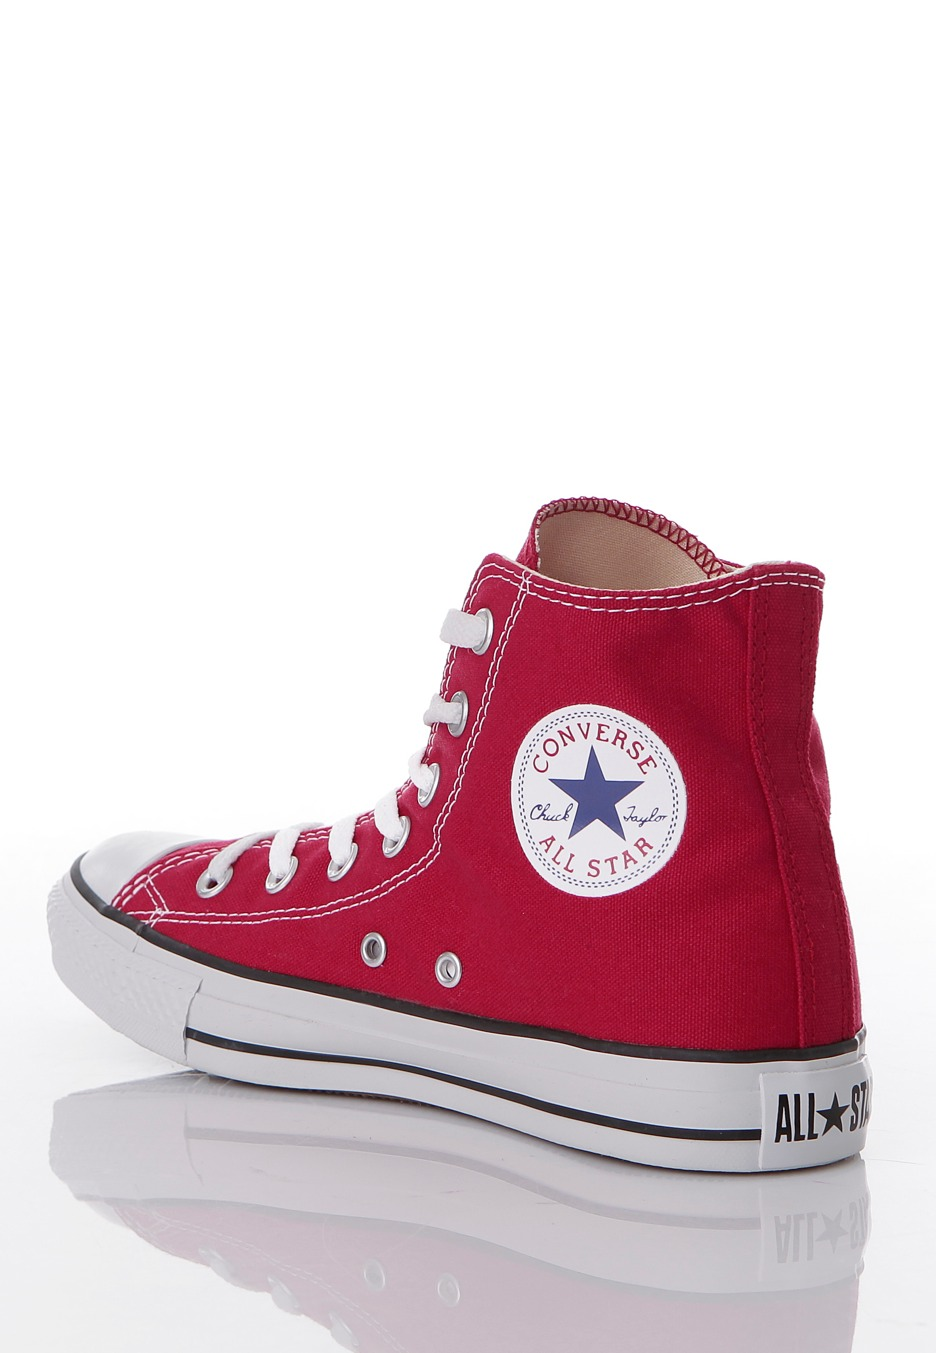 Converse - Chuck Taylor All Star HI Red - Girl Shoes ...